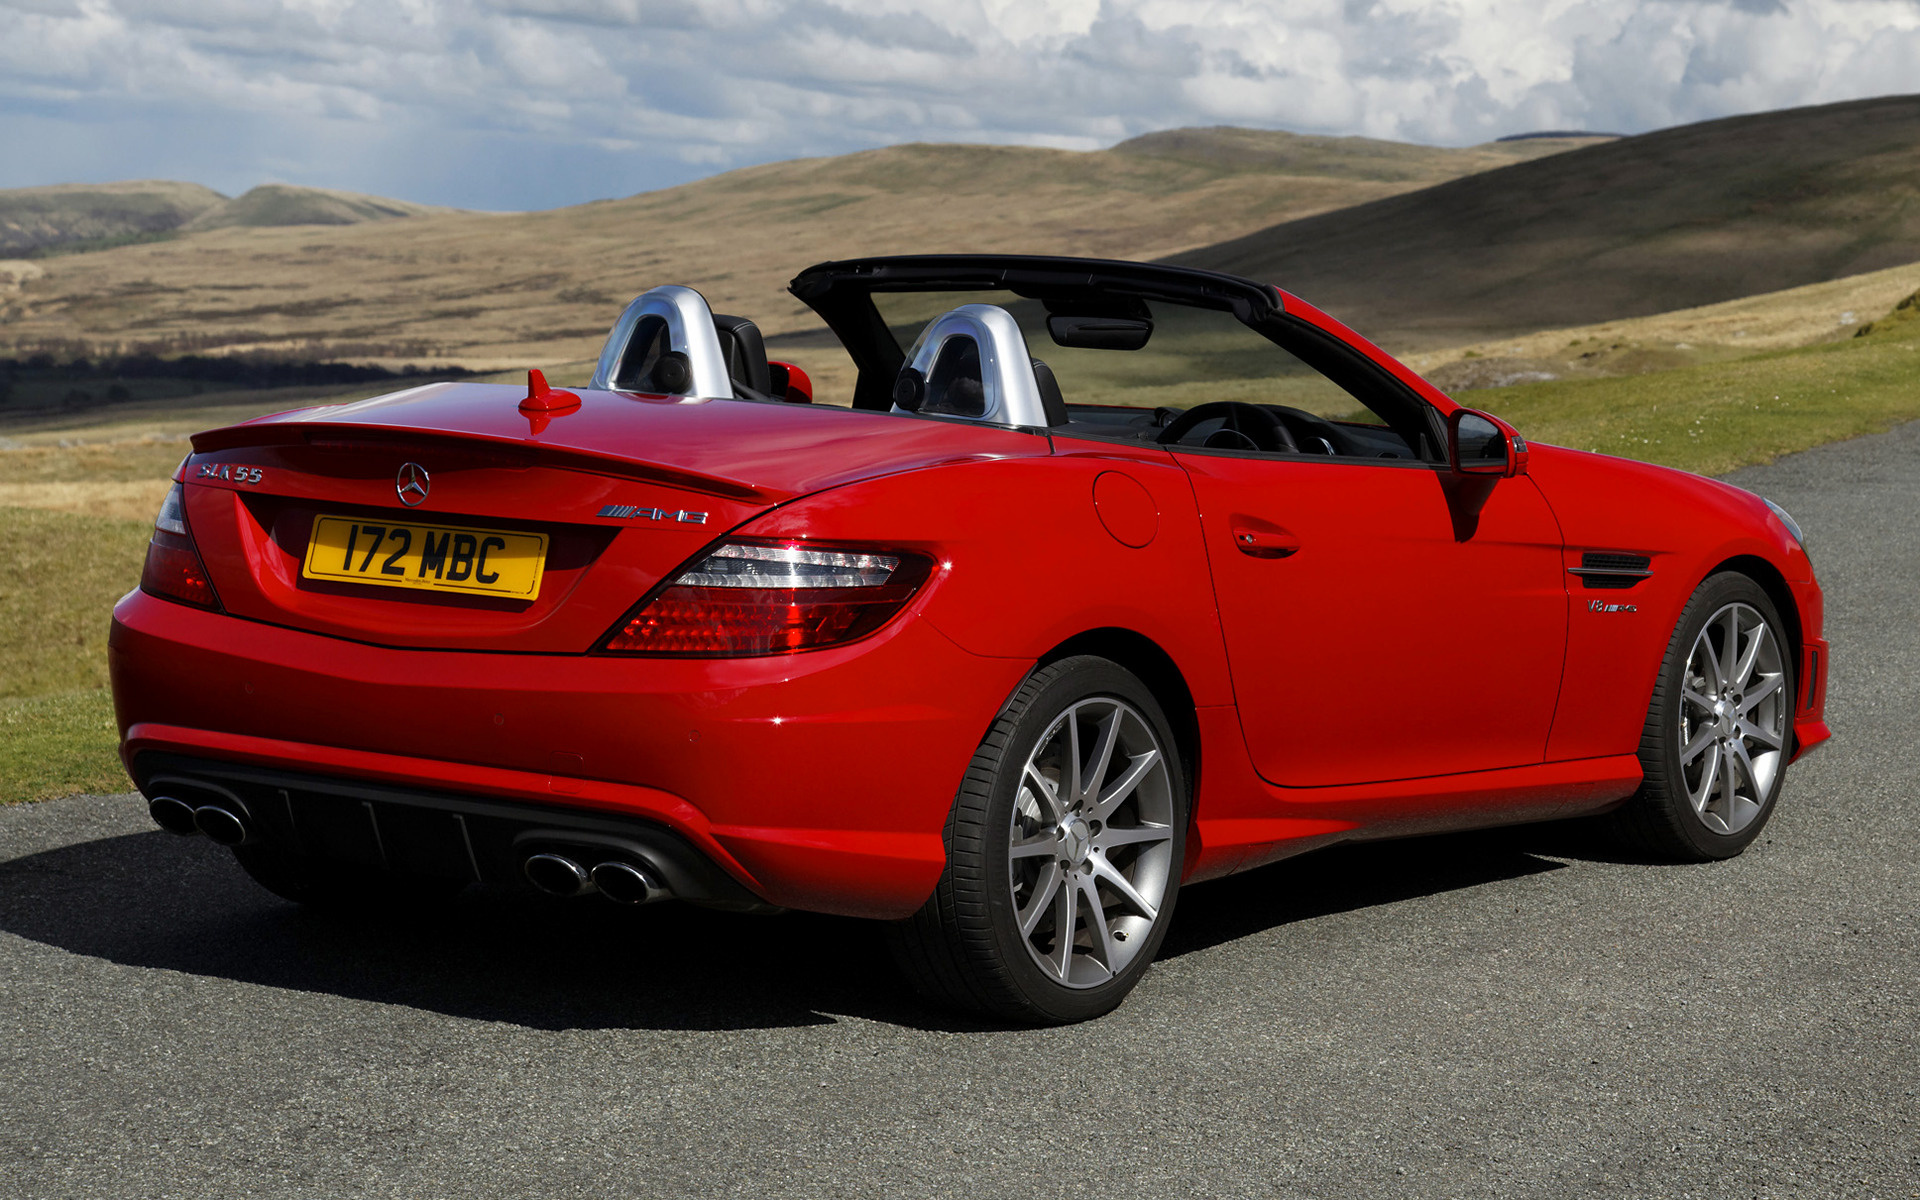 mercedes benz slk 55 amg 2012 uk wallpapers and hd images car pixel. Black Bedroom Furniture Sets. Home Design Ideas